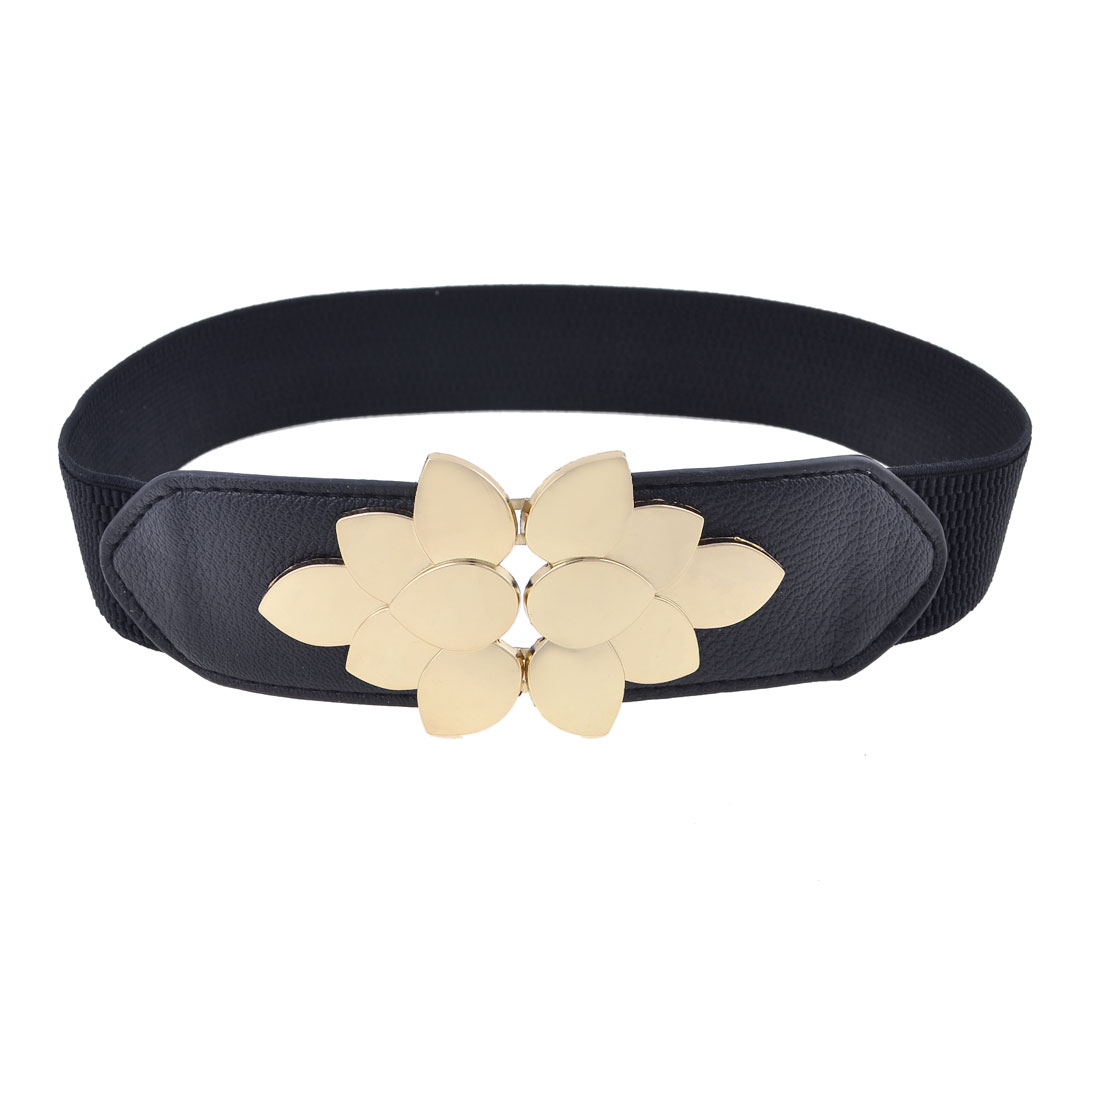 Lady Gold Tone Flower Design Metal Buckle Black Elastic Cinch Waist Belt